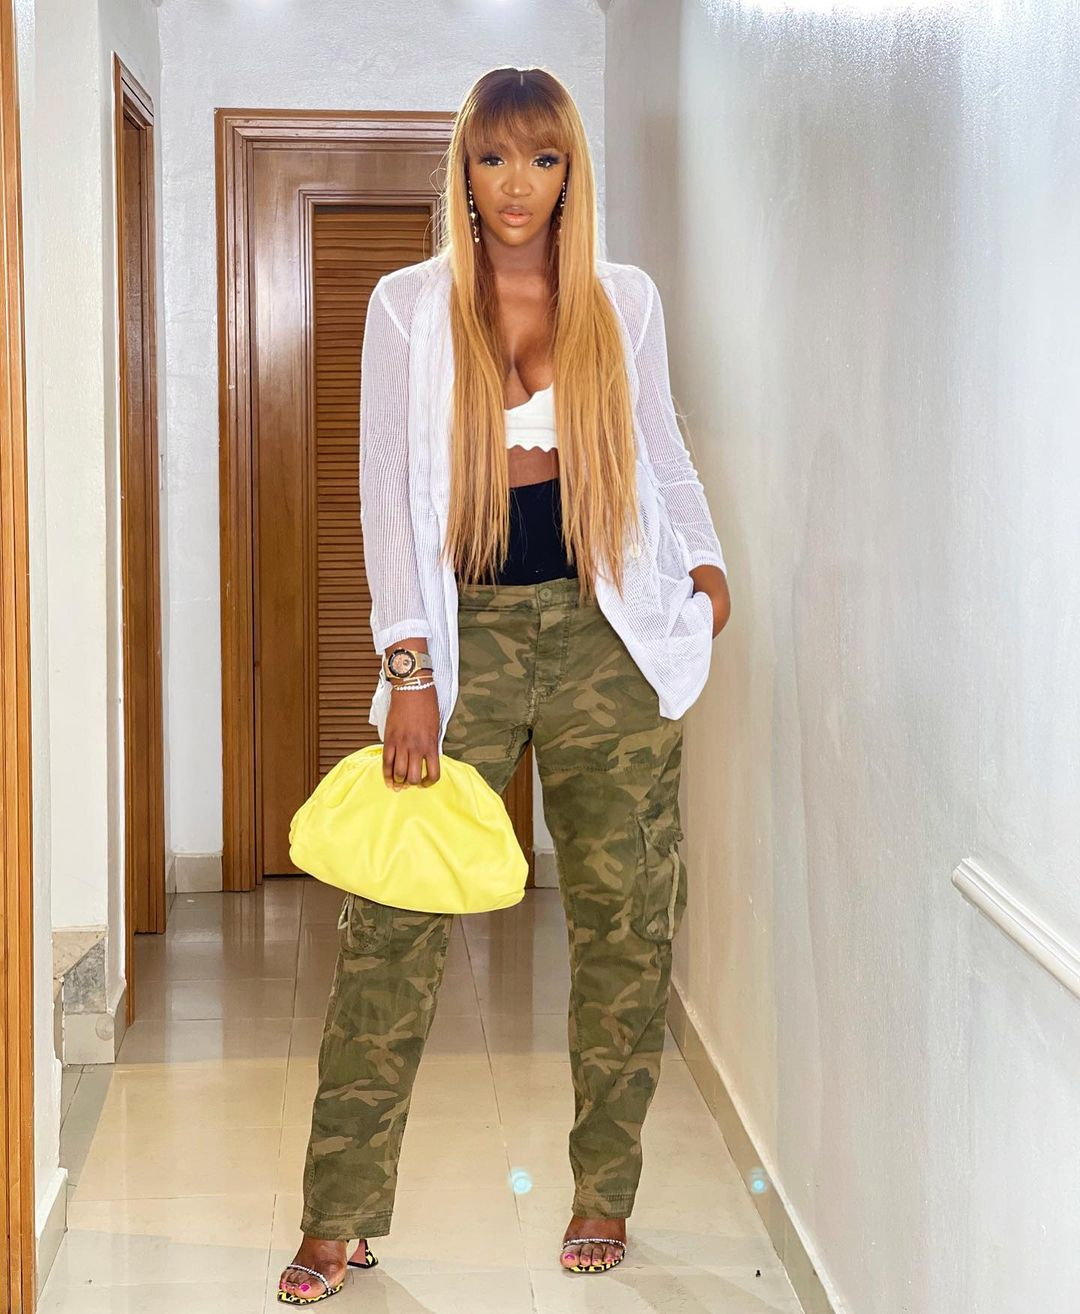 Idia Aisien Pulls Off The Chic Look With Ease